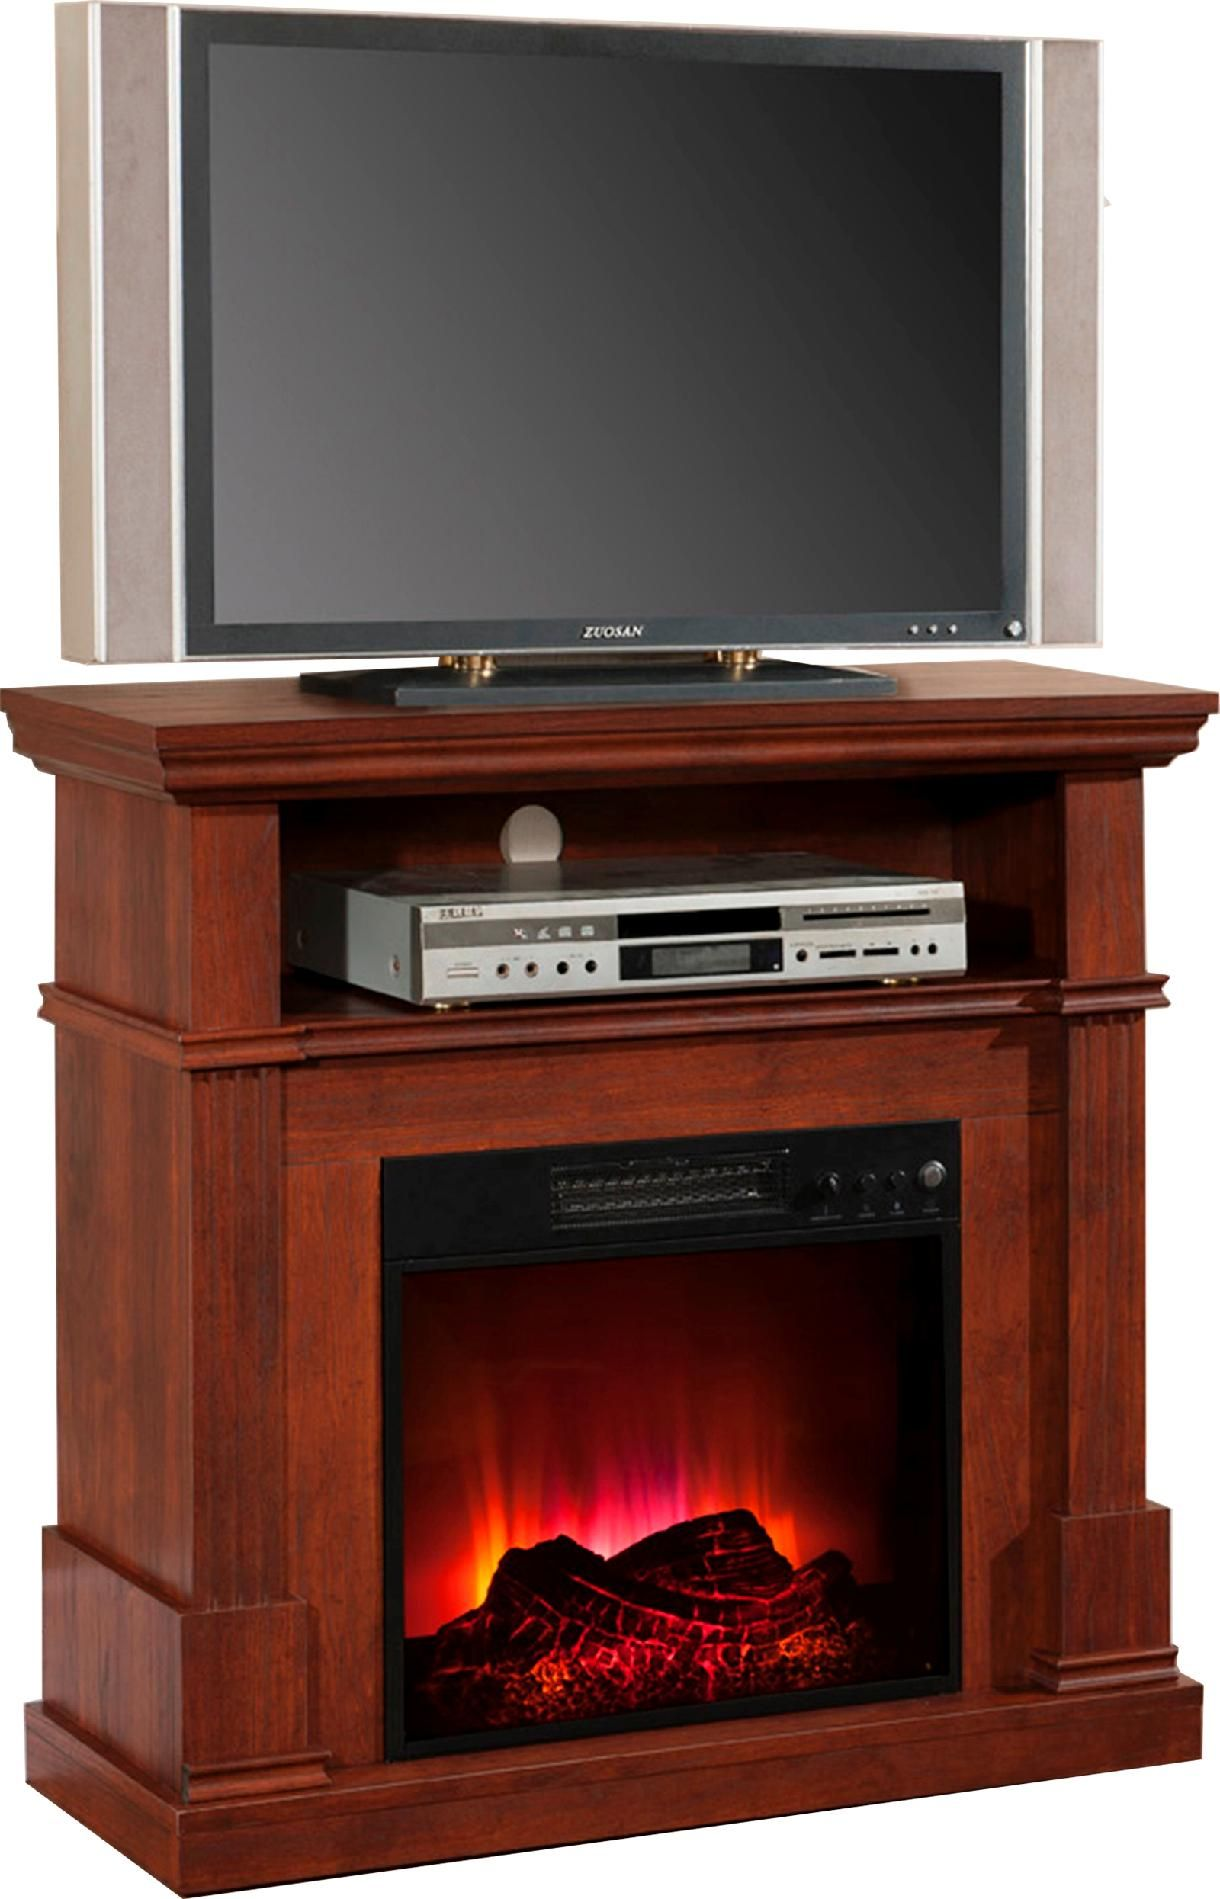 sorenson fireplace tv stand on electric entertainment center fireplace warm entertainment from sears tv stand and entertainment center flat screen tv stand fireplace flat screen tv stand